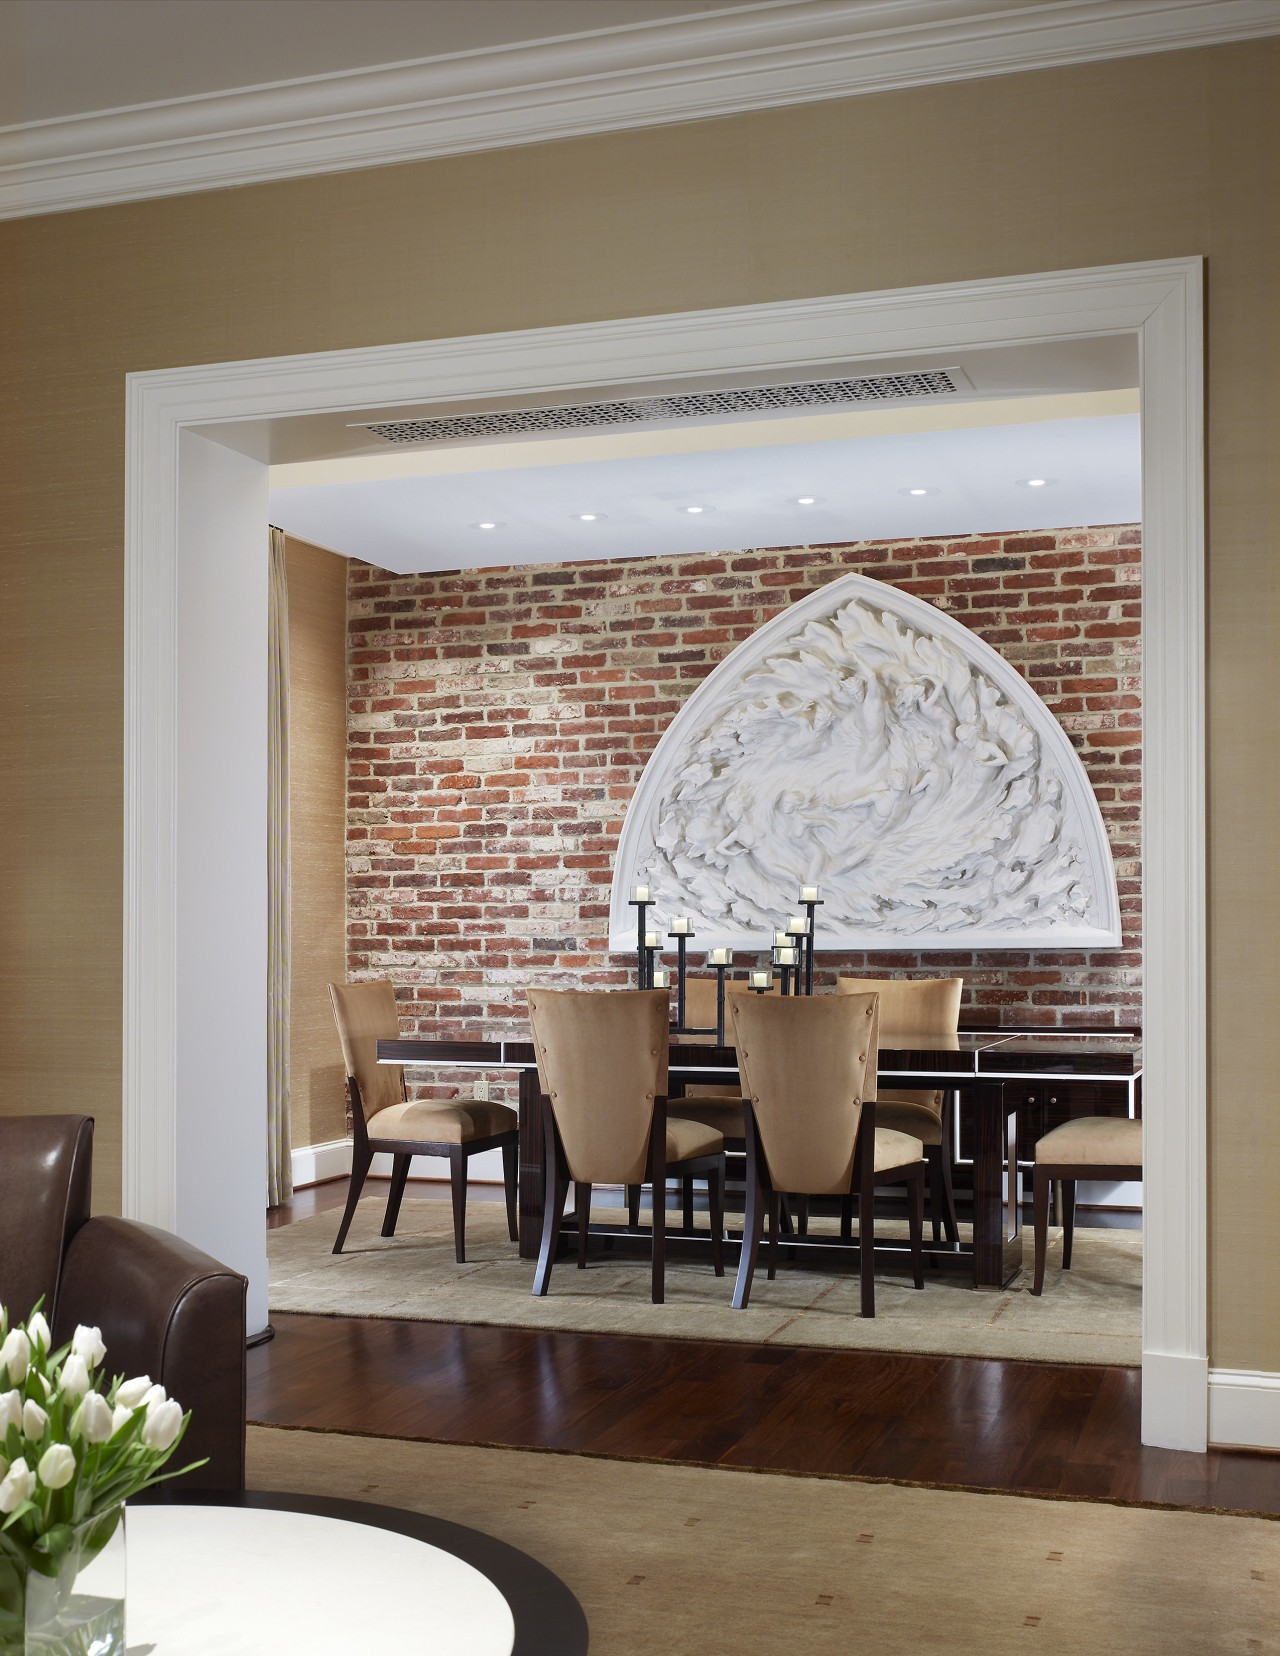 This house was remodeled by architect Ankie Barnes ceiling, dining room, furniture, home, interior design, living room, table, wall, window, gray, brown